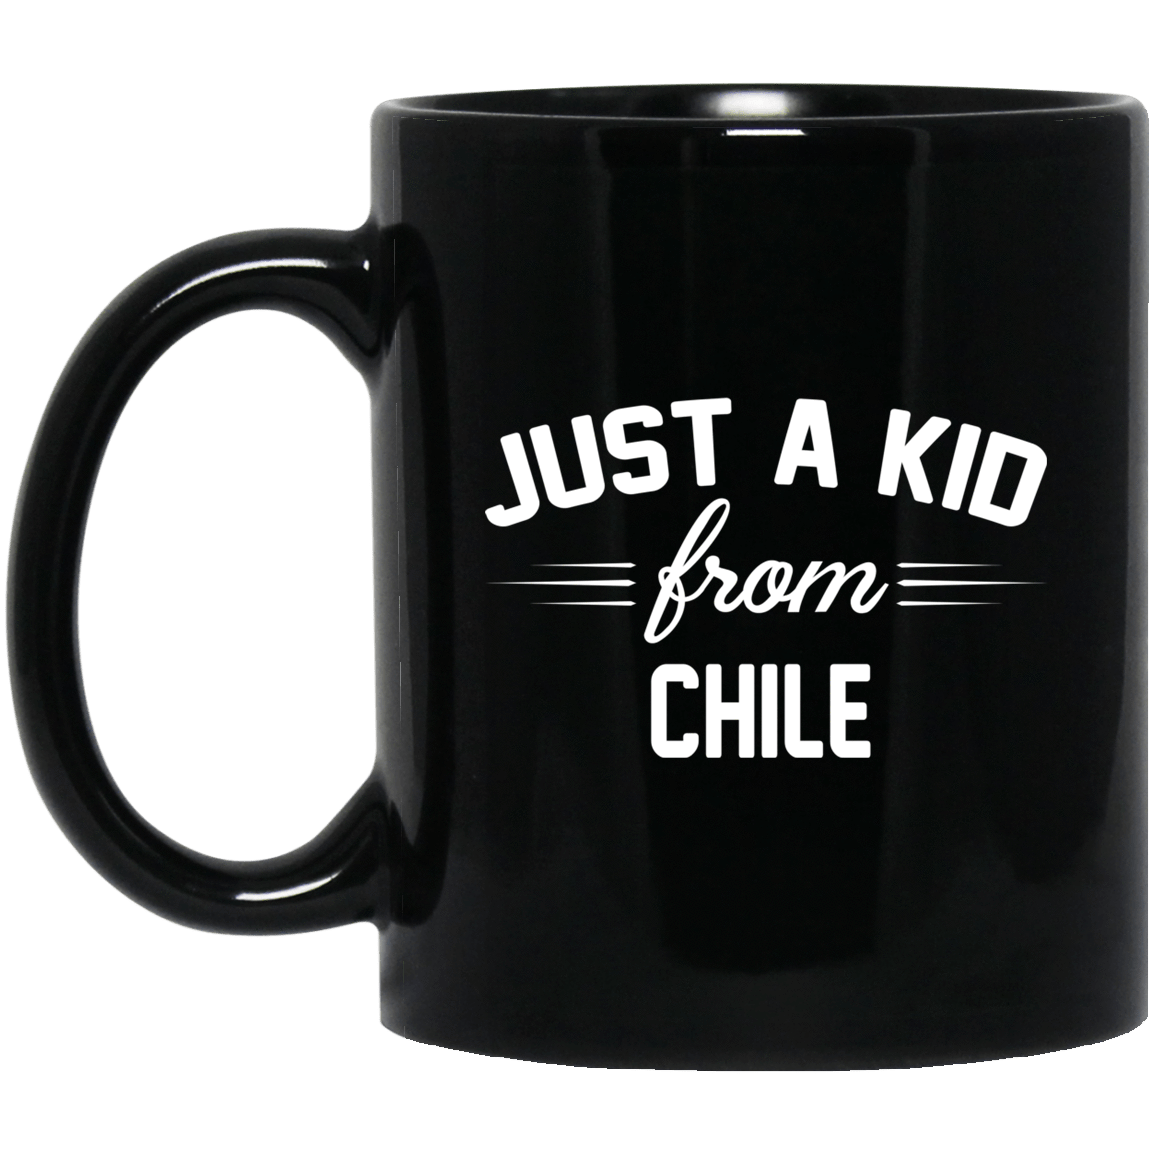 Just A Kid Store | Chile Mug 1065-10181-72111281-49307 - Tee Ript